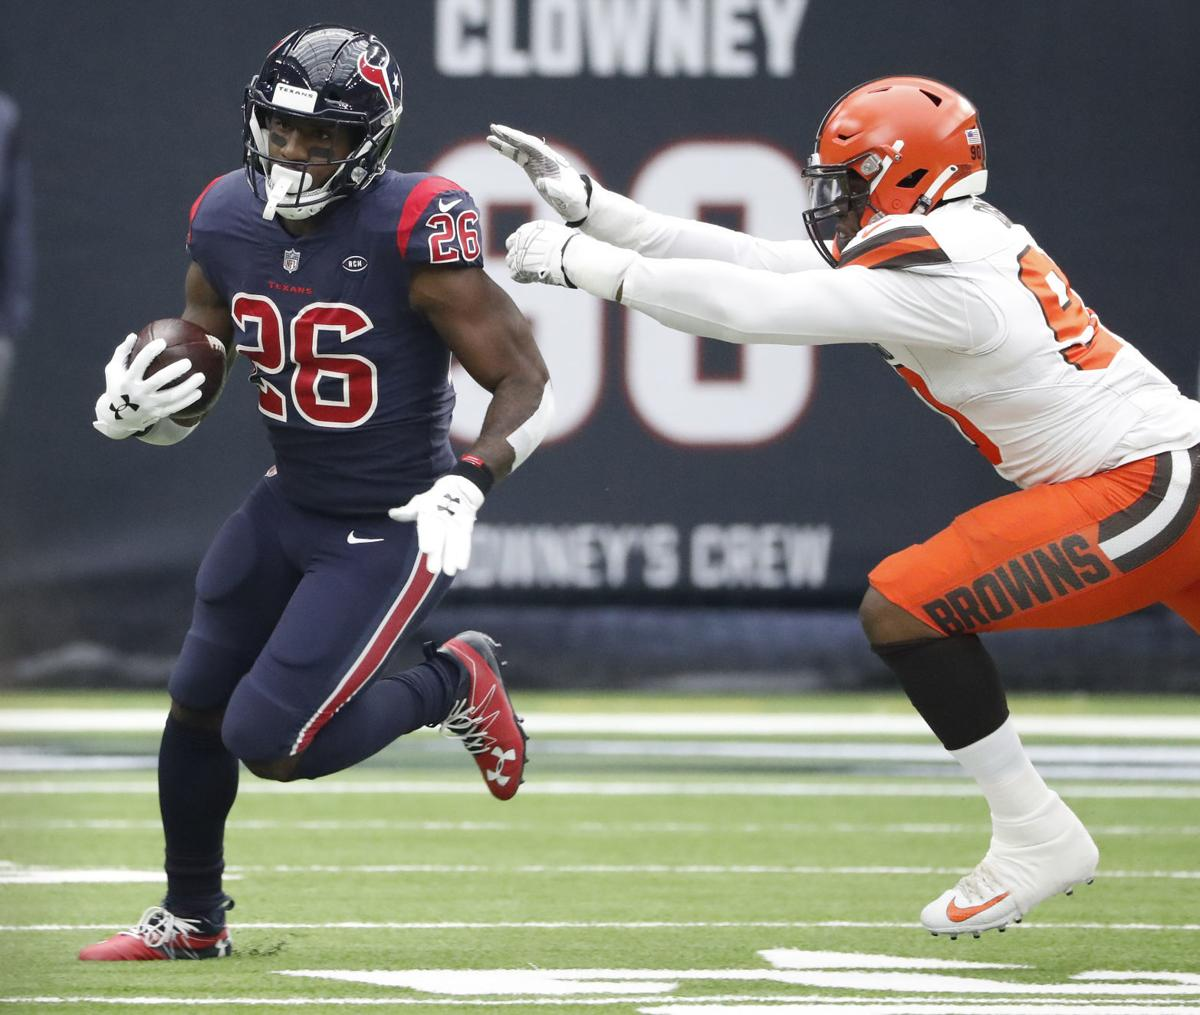 Houston Texans vs. Cleveland Browns